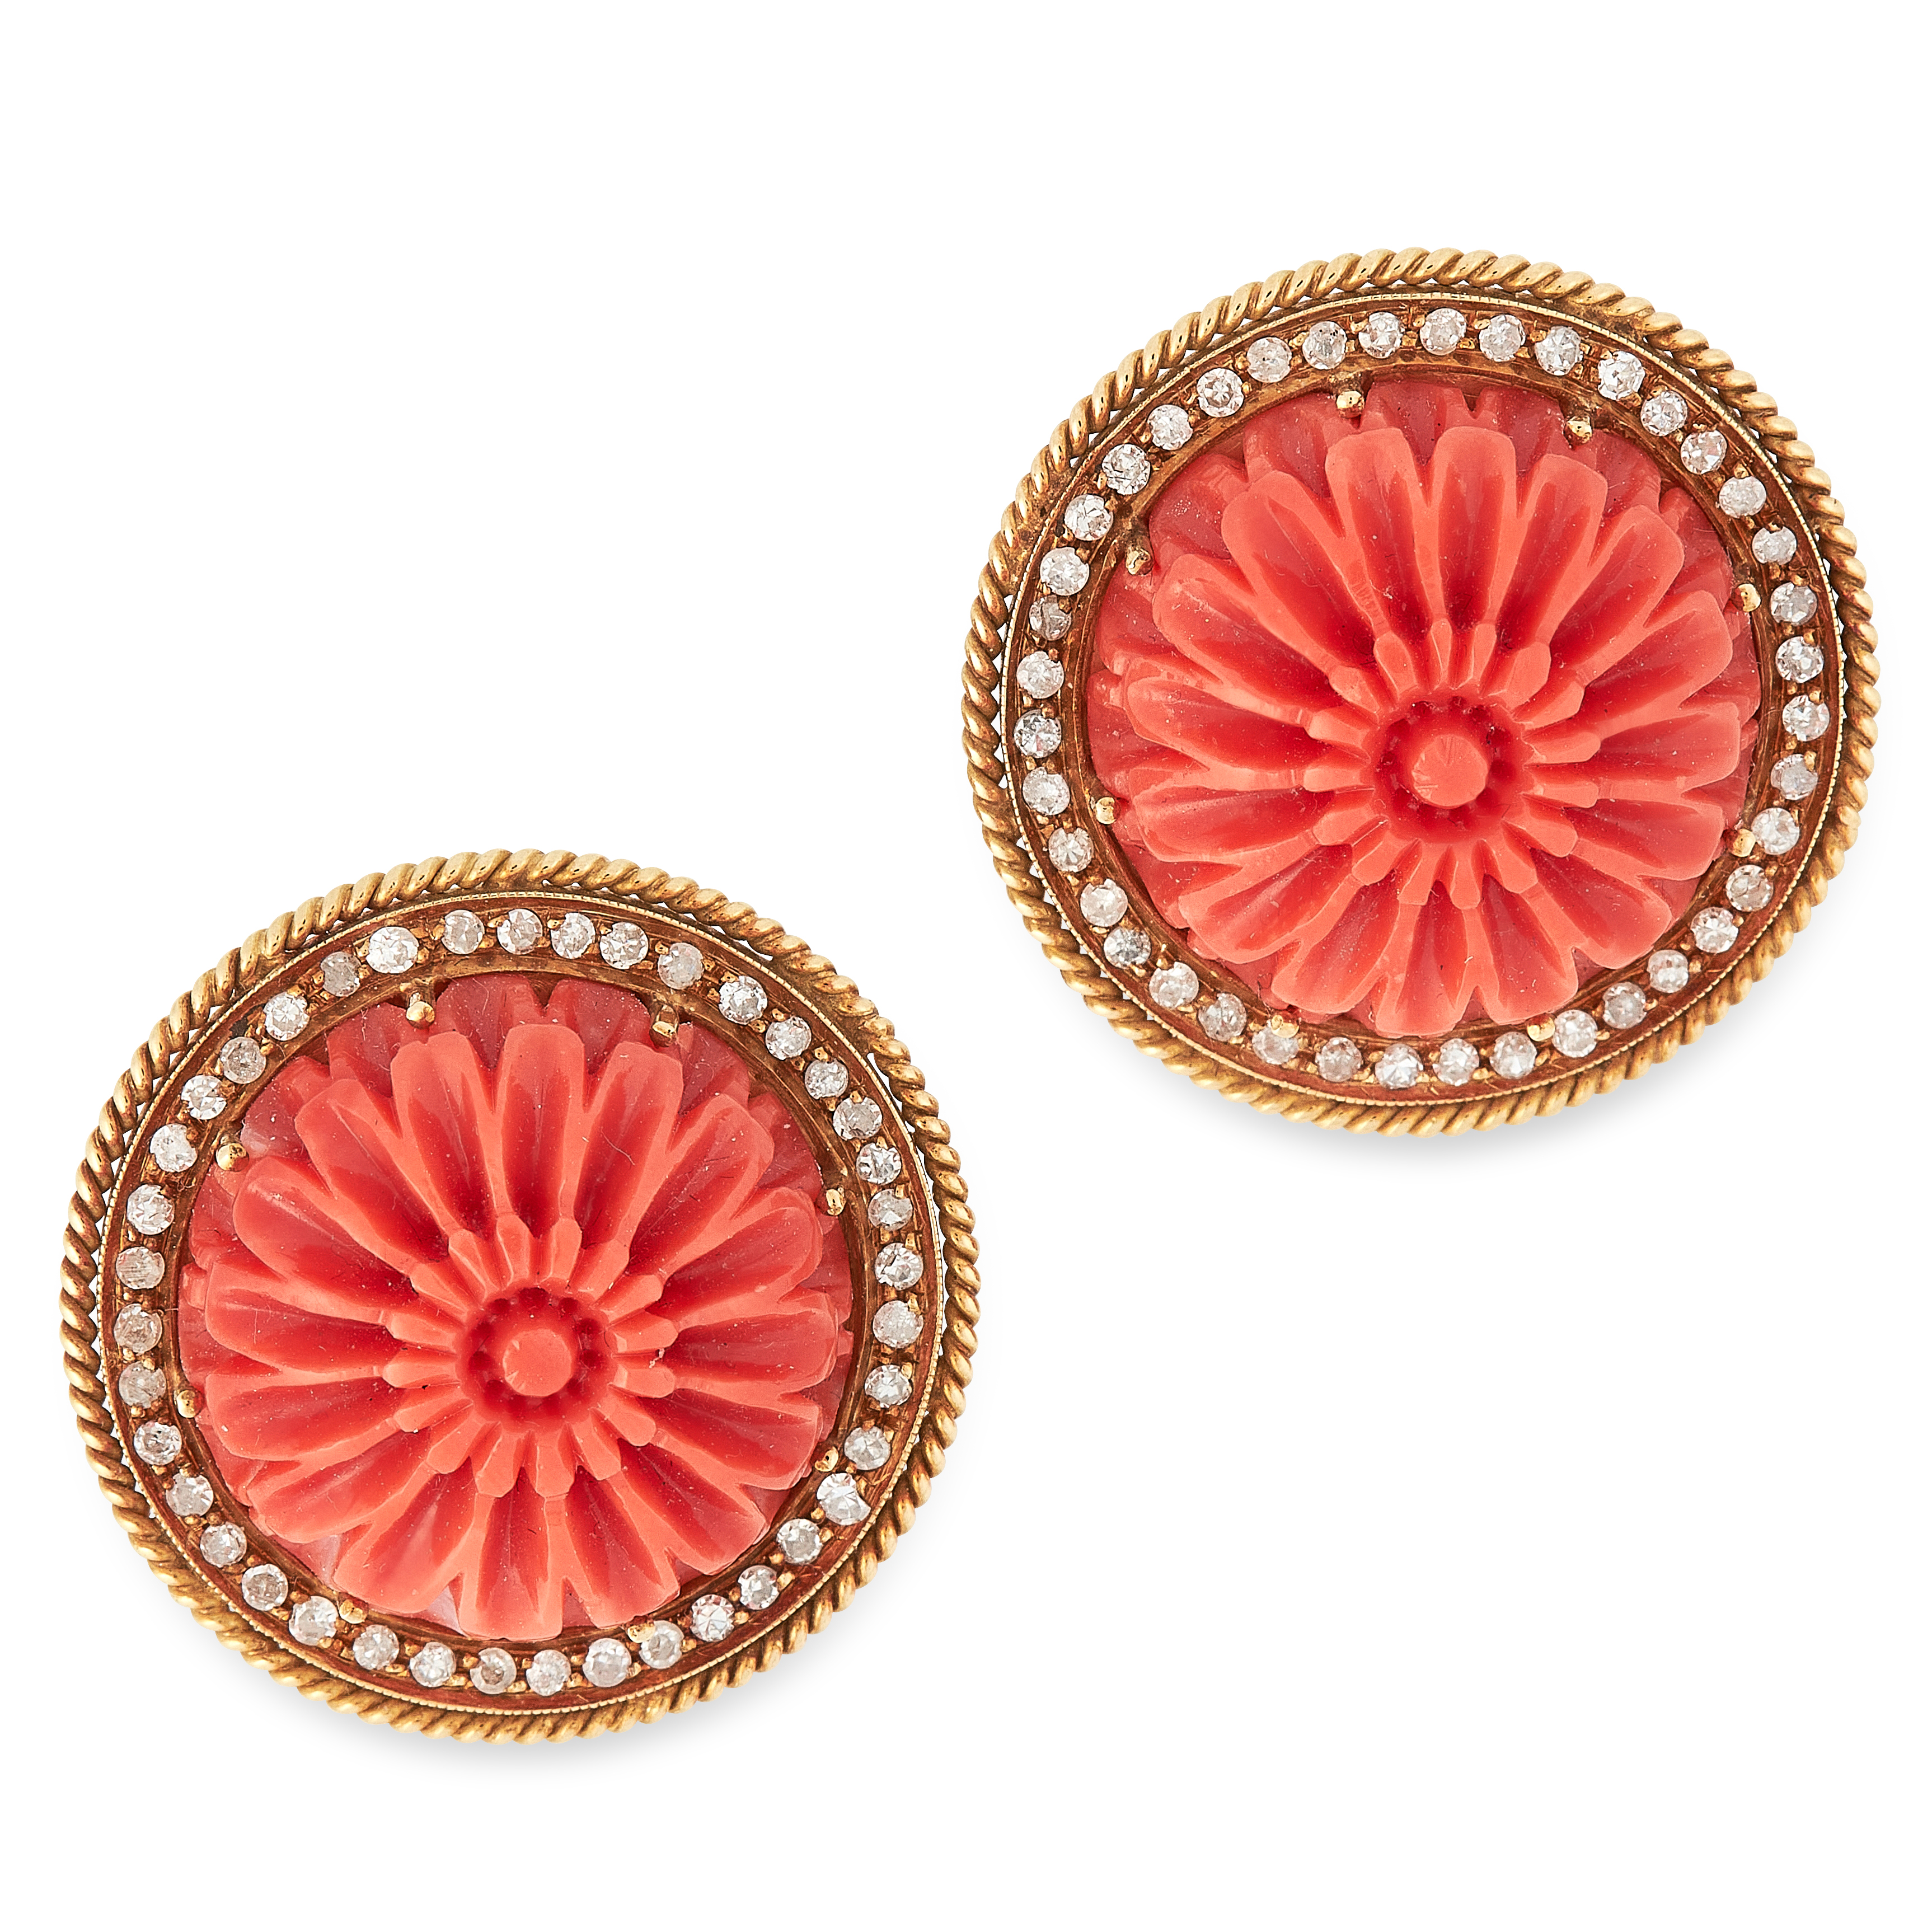 A PAIR OF CARVED CORAL AND DIAMOND EARRINGS in 18ct yellow gold, each set with a circular piece of